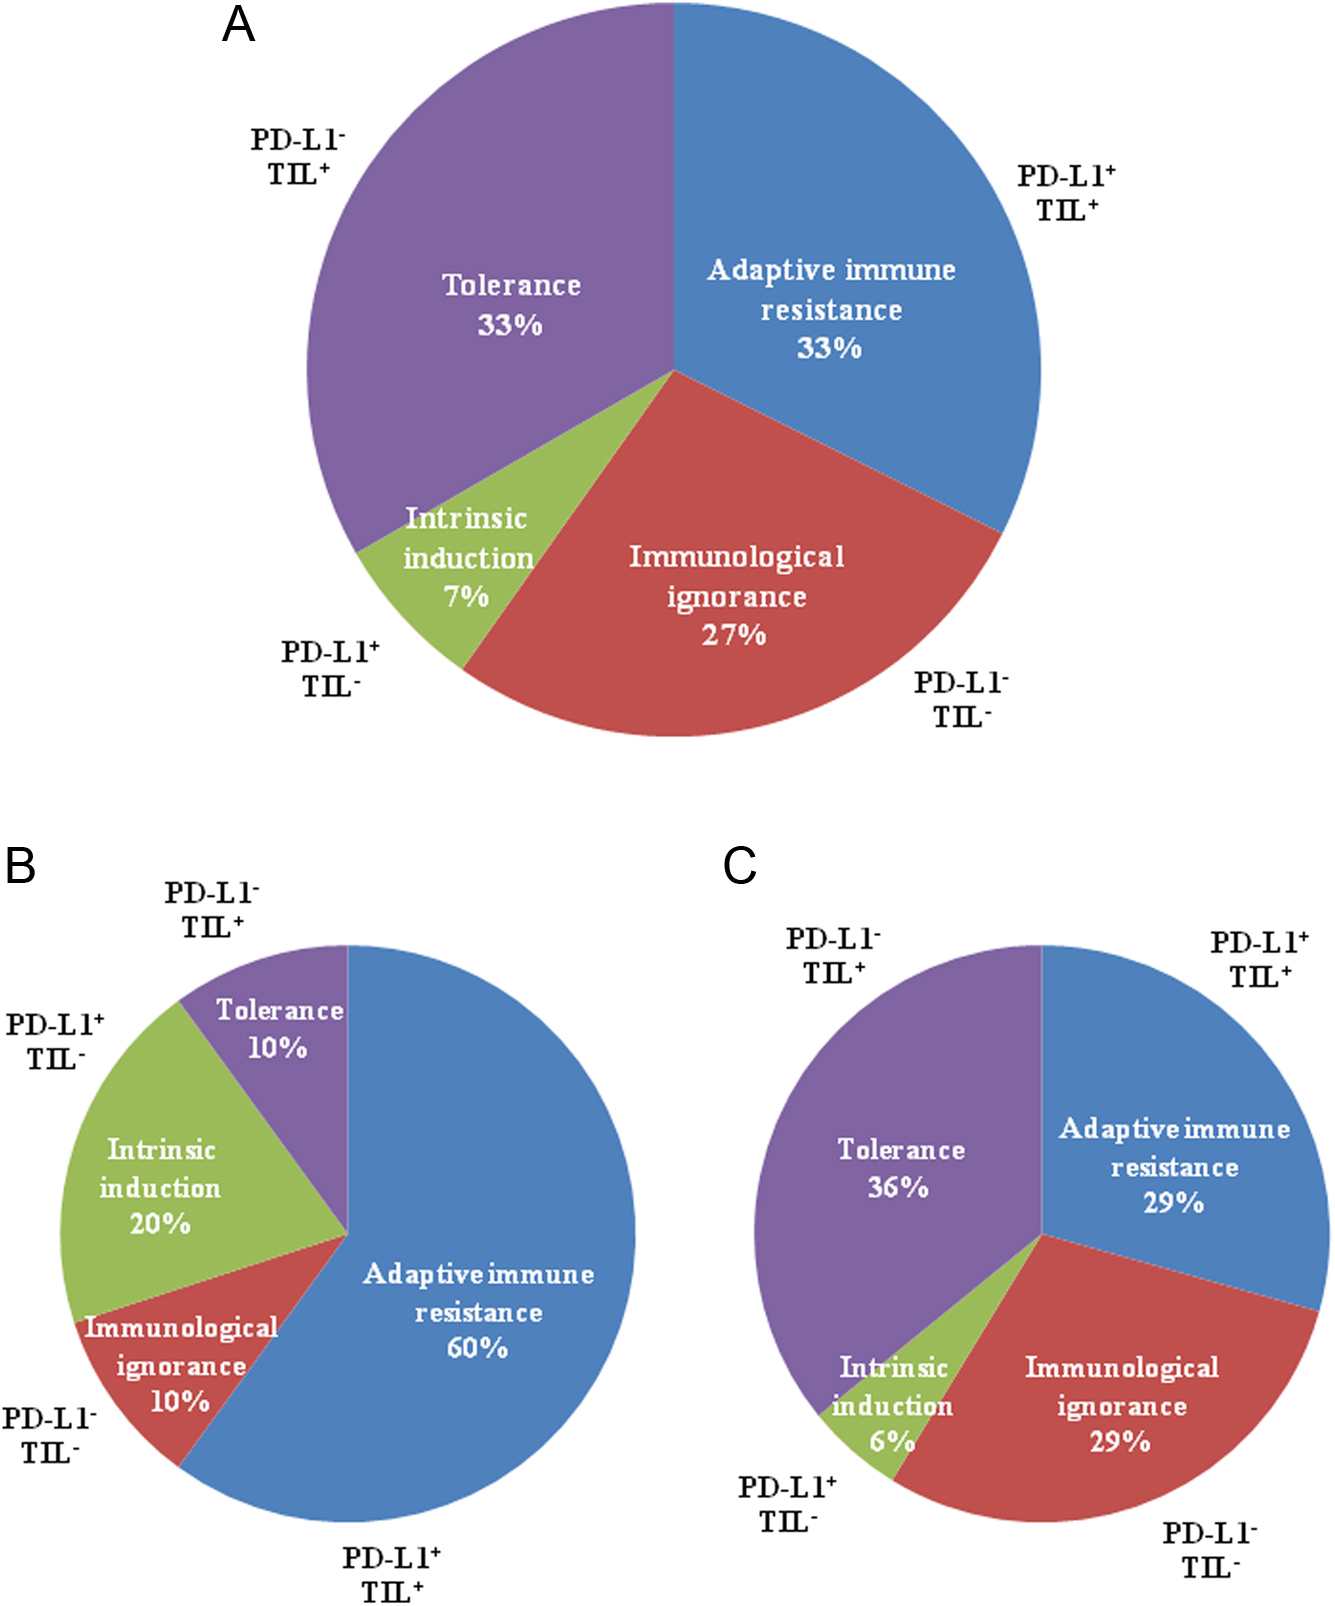 18 1 Architecture Of The Immune System: Analysis Of The Immune Landscape Of Small Bowel